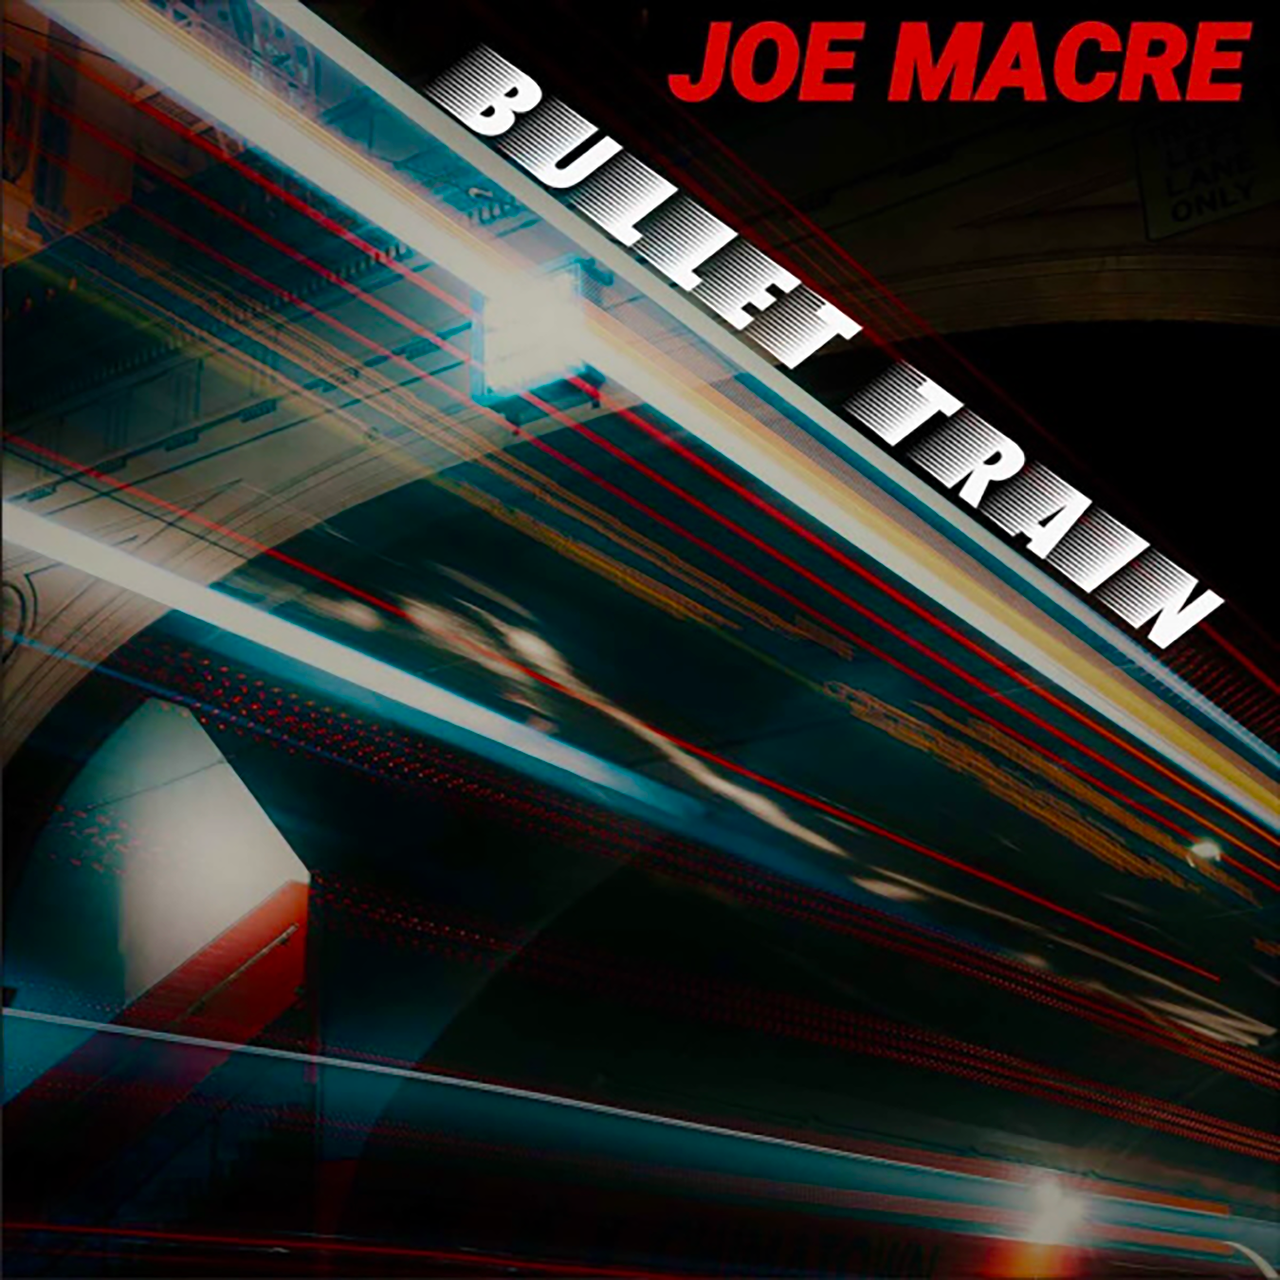 Bullet Train By Joe Macre Available on CD by Renaissance Records